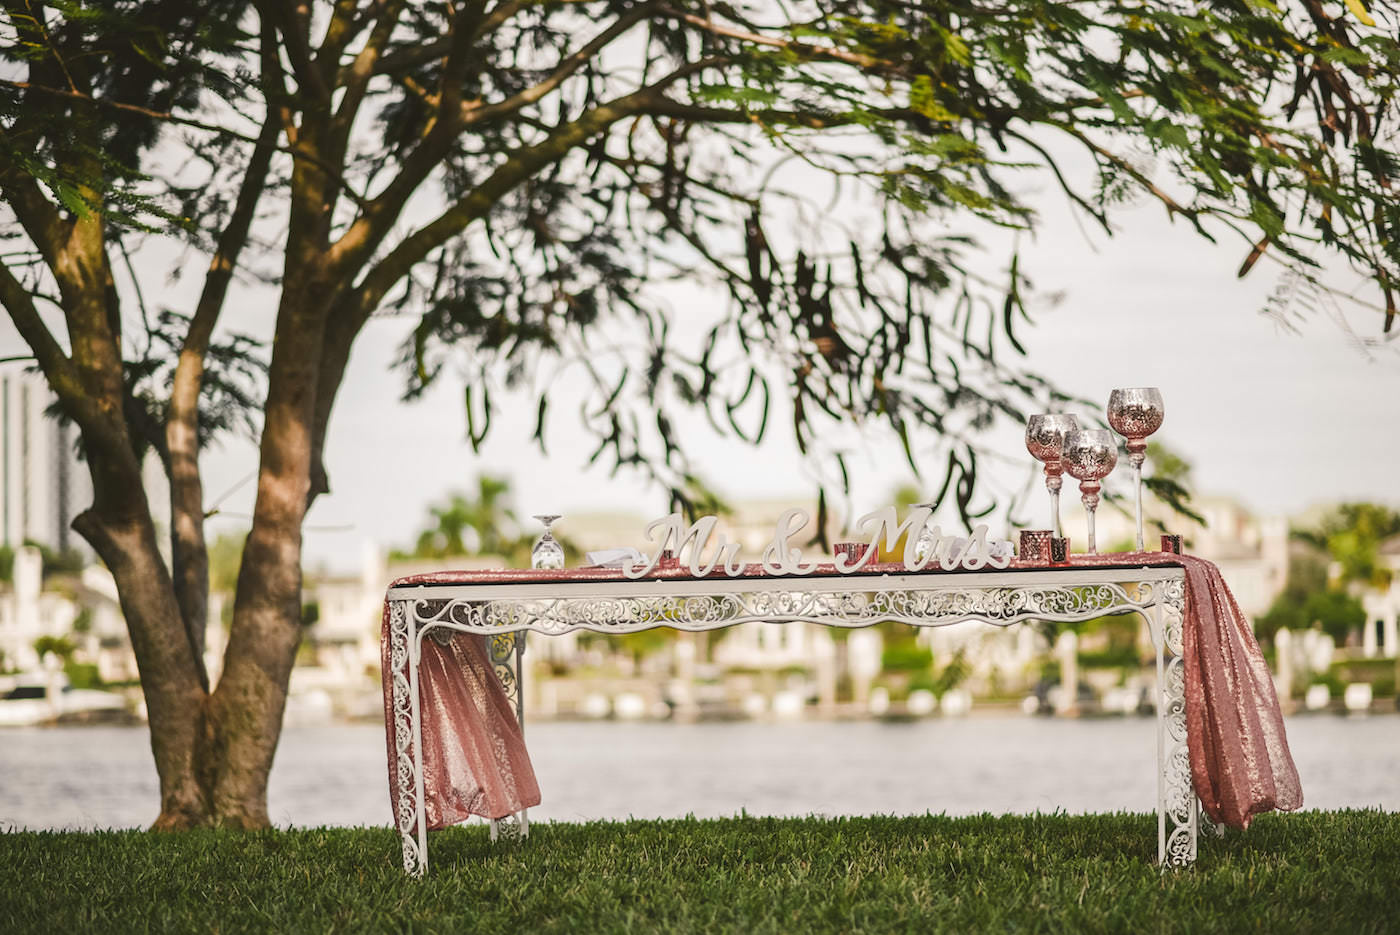 Tampa Outdoor Waterfront Garden Wedding Reception Sweetheart Table with Rose Gold Sequin Runner and Mr and Mrs Sign